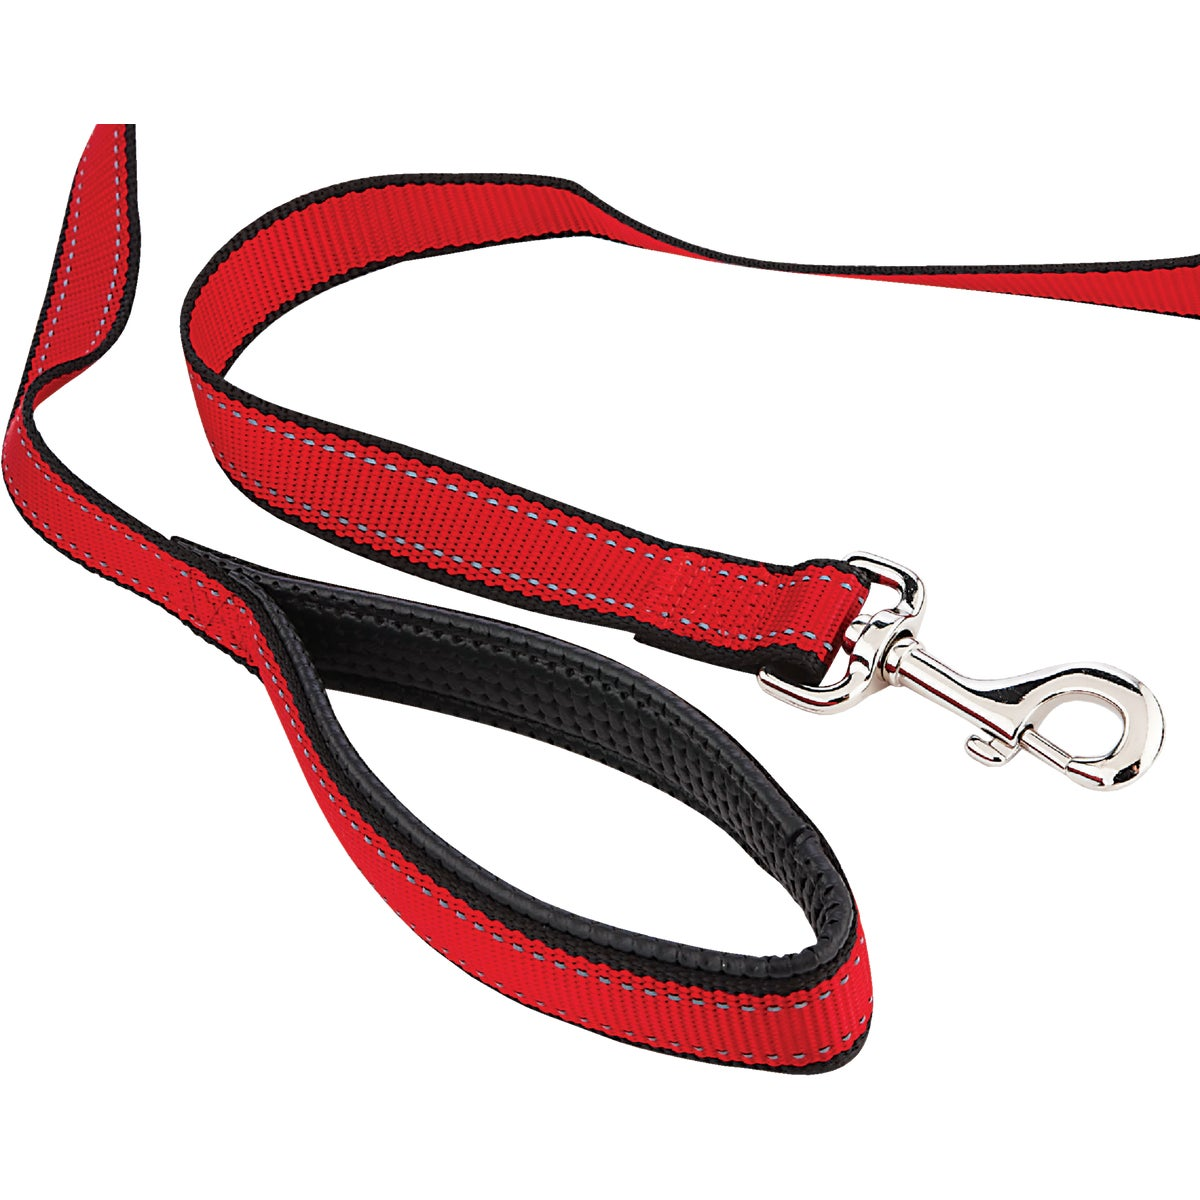 6' HI-VIS DOG LEASH - 32116 by Westminster Pet